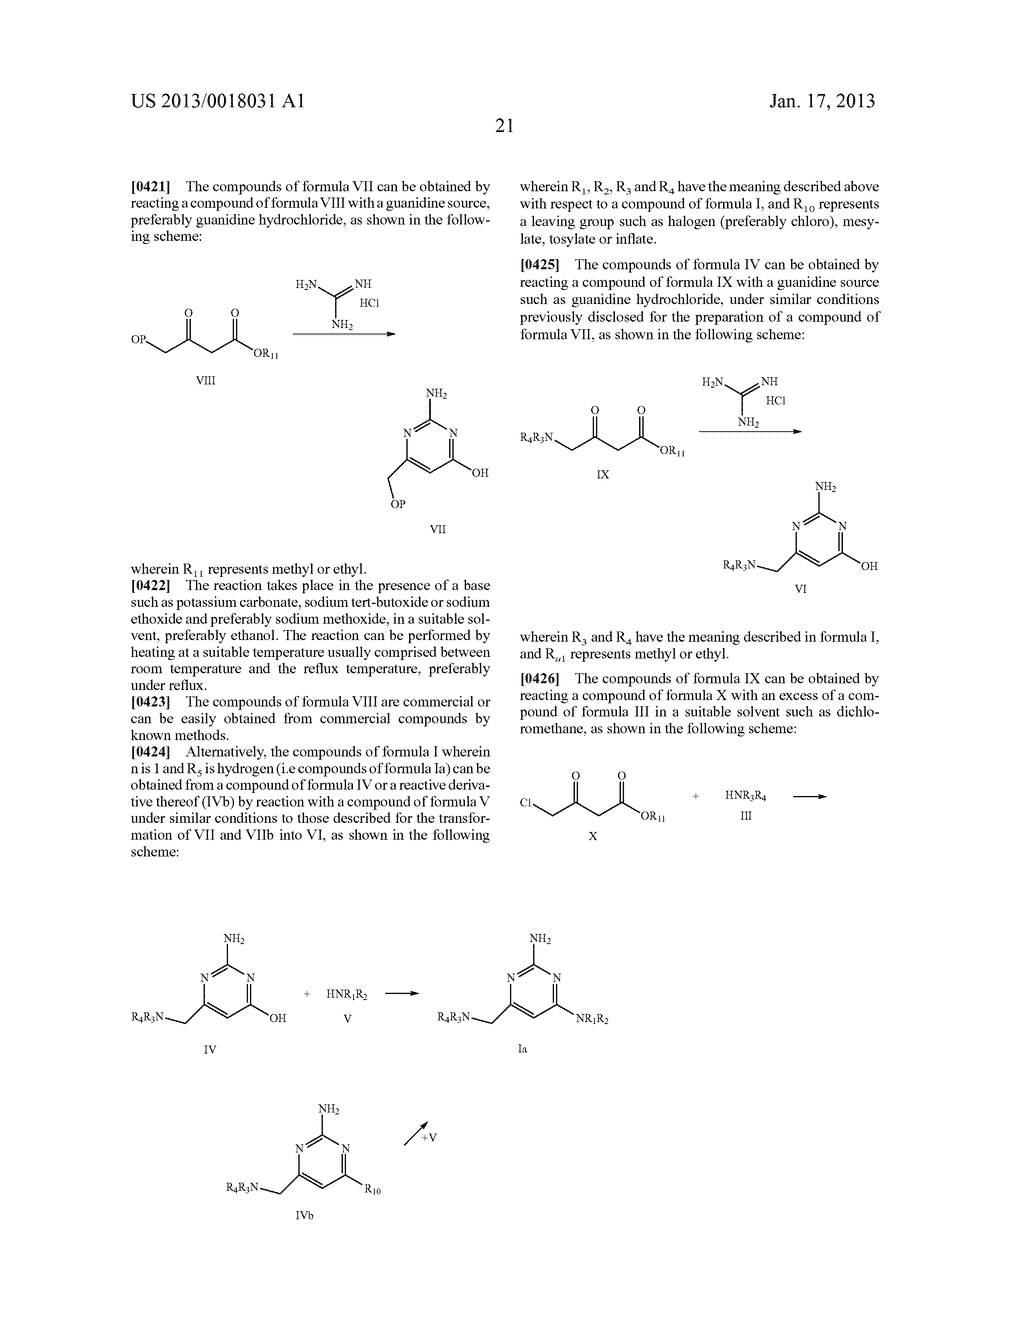 AMINOALKYLPYRIMIDINE DERIVATIVES AS HISTAMINE H4 RECEPTOR ANTAGONISTS - diagram, schematic, and image 22